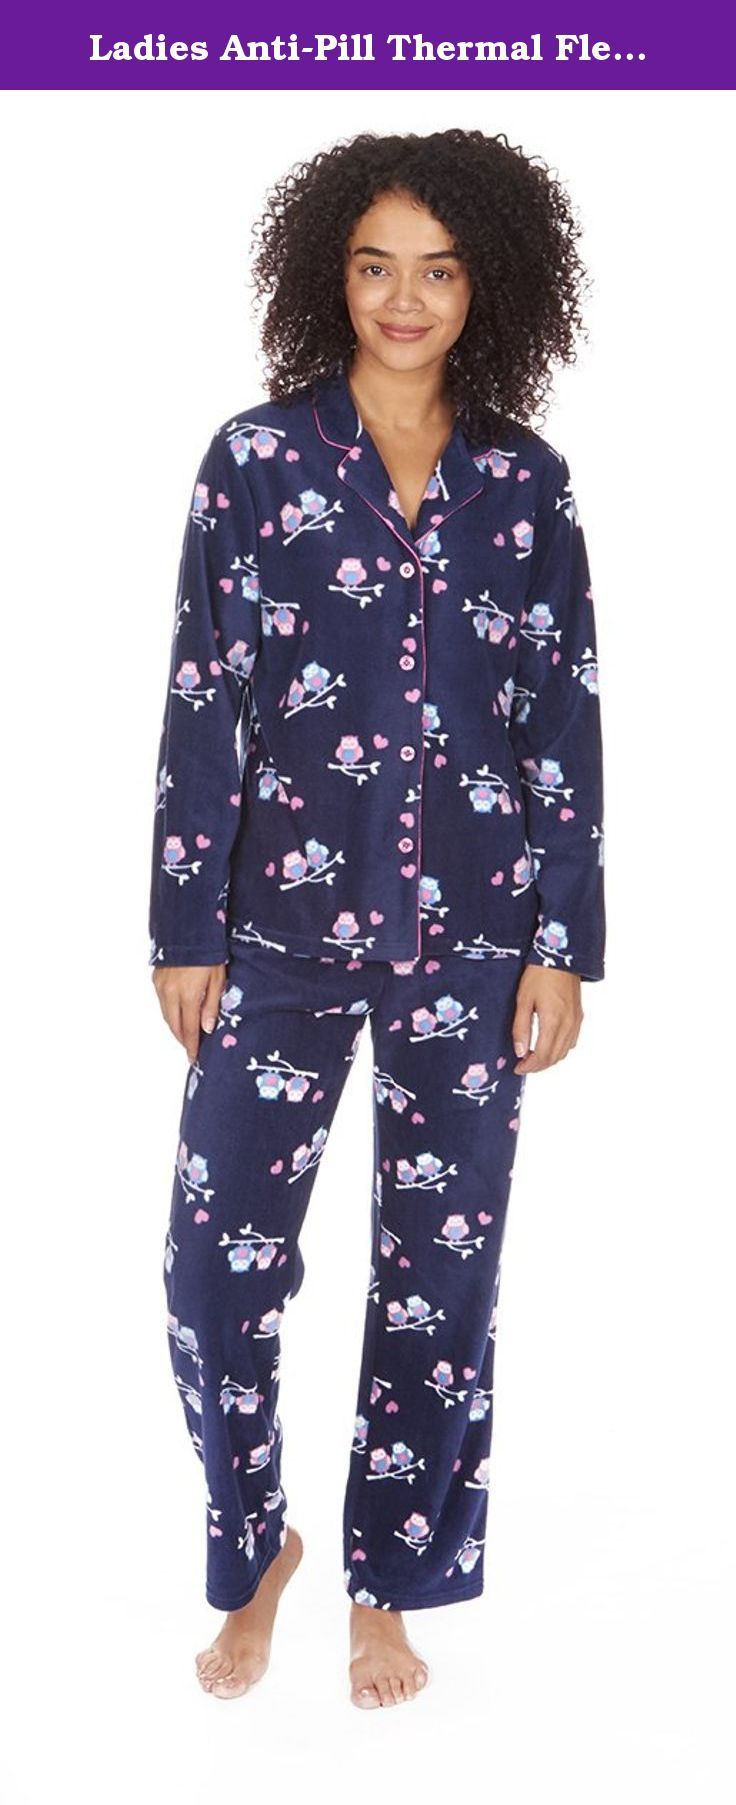 Ladies Anti-Pill Thermal Fleece Check Pajama Set. Keep snug and warm during cold nights and while lounging around the house with these amazing Microfleece Pajama sets! Made from 100% Polyester meaning these are soft, strong, light weight, quick drying and resistant to shrinking, stretching, mildew and creasing! The polyester is of a very popular no-pill microfleece which resist pilling, ensuring a pleasant looking and long lasting addition to your nightwear! Choose from two colorways; a...